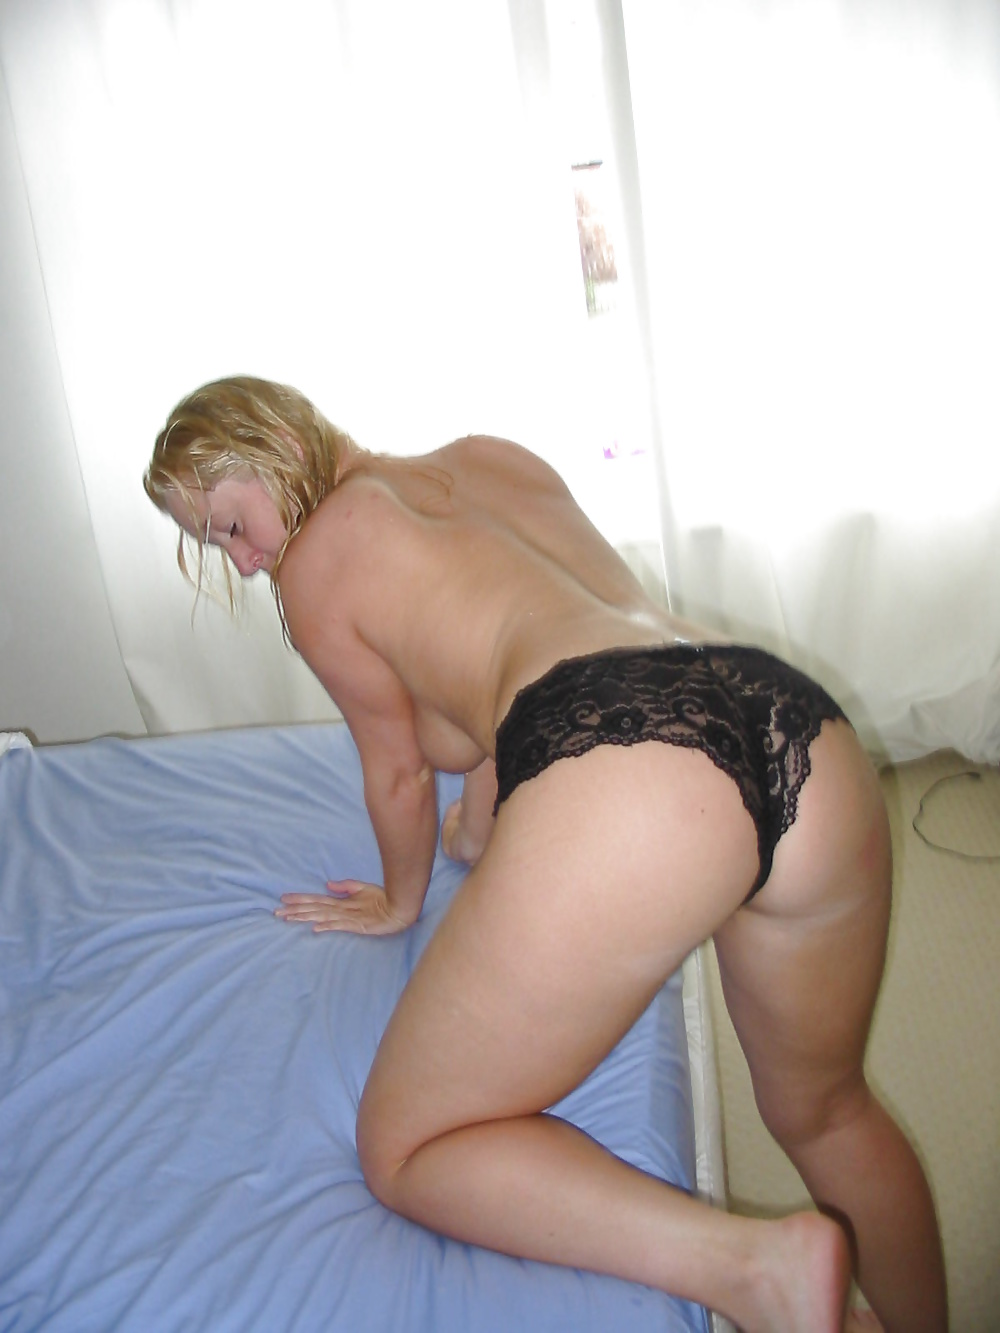 Muy Caliente Porn see and save as rubia mujer muy caliente porn pict - xhams